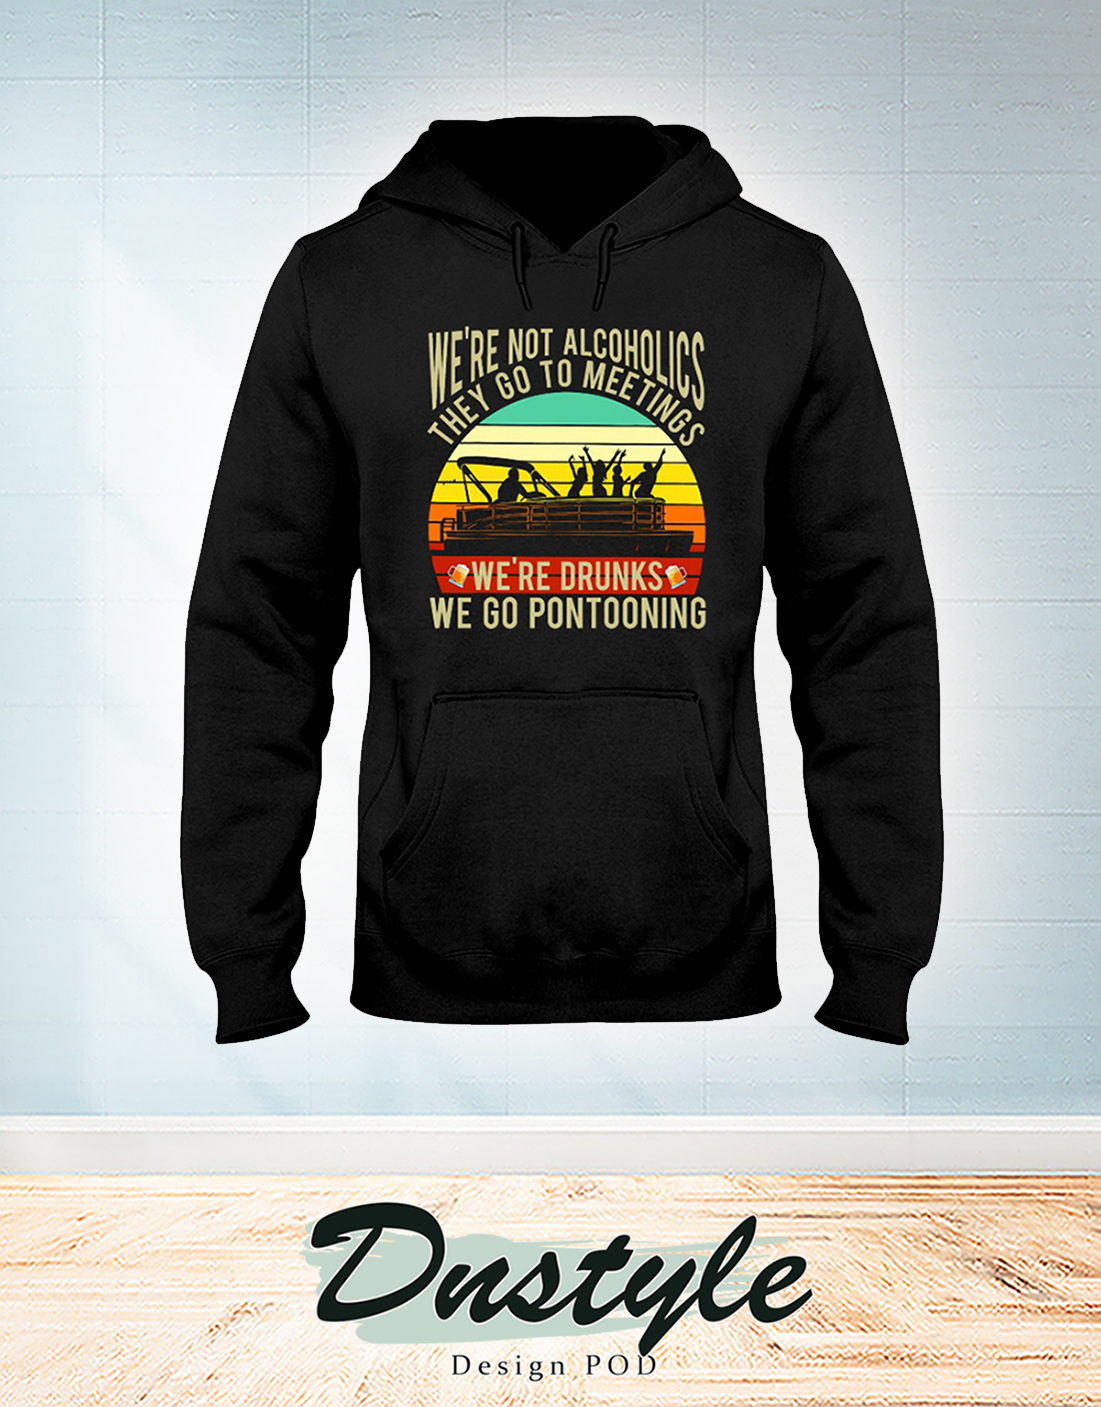 Vintage Boating we're not alcoholics they go to meetings hoodie